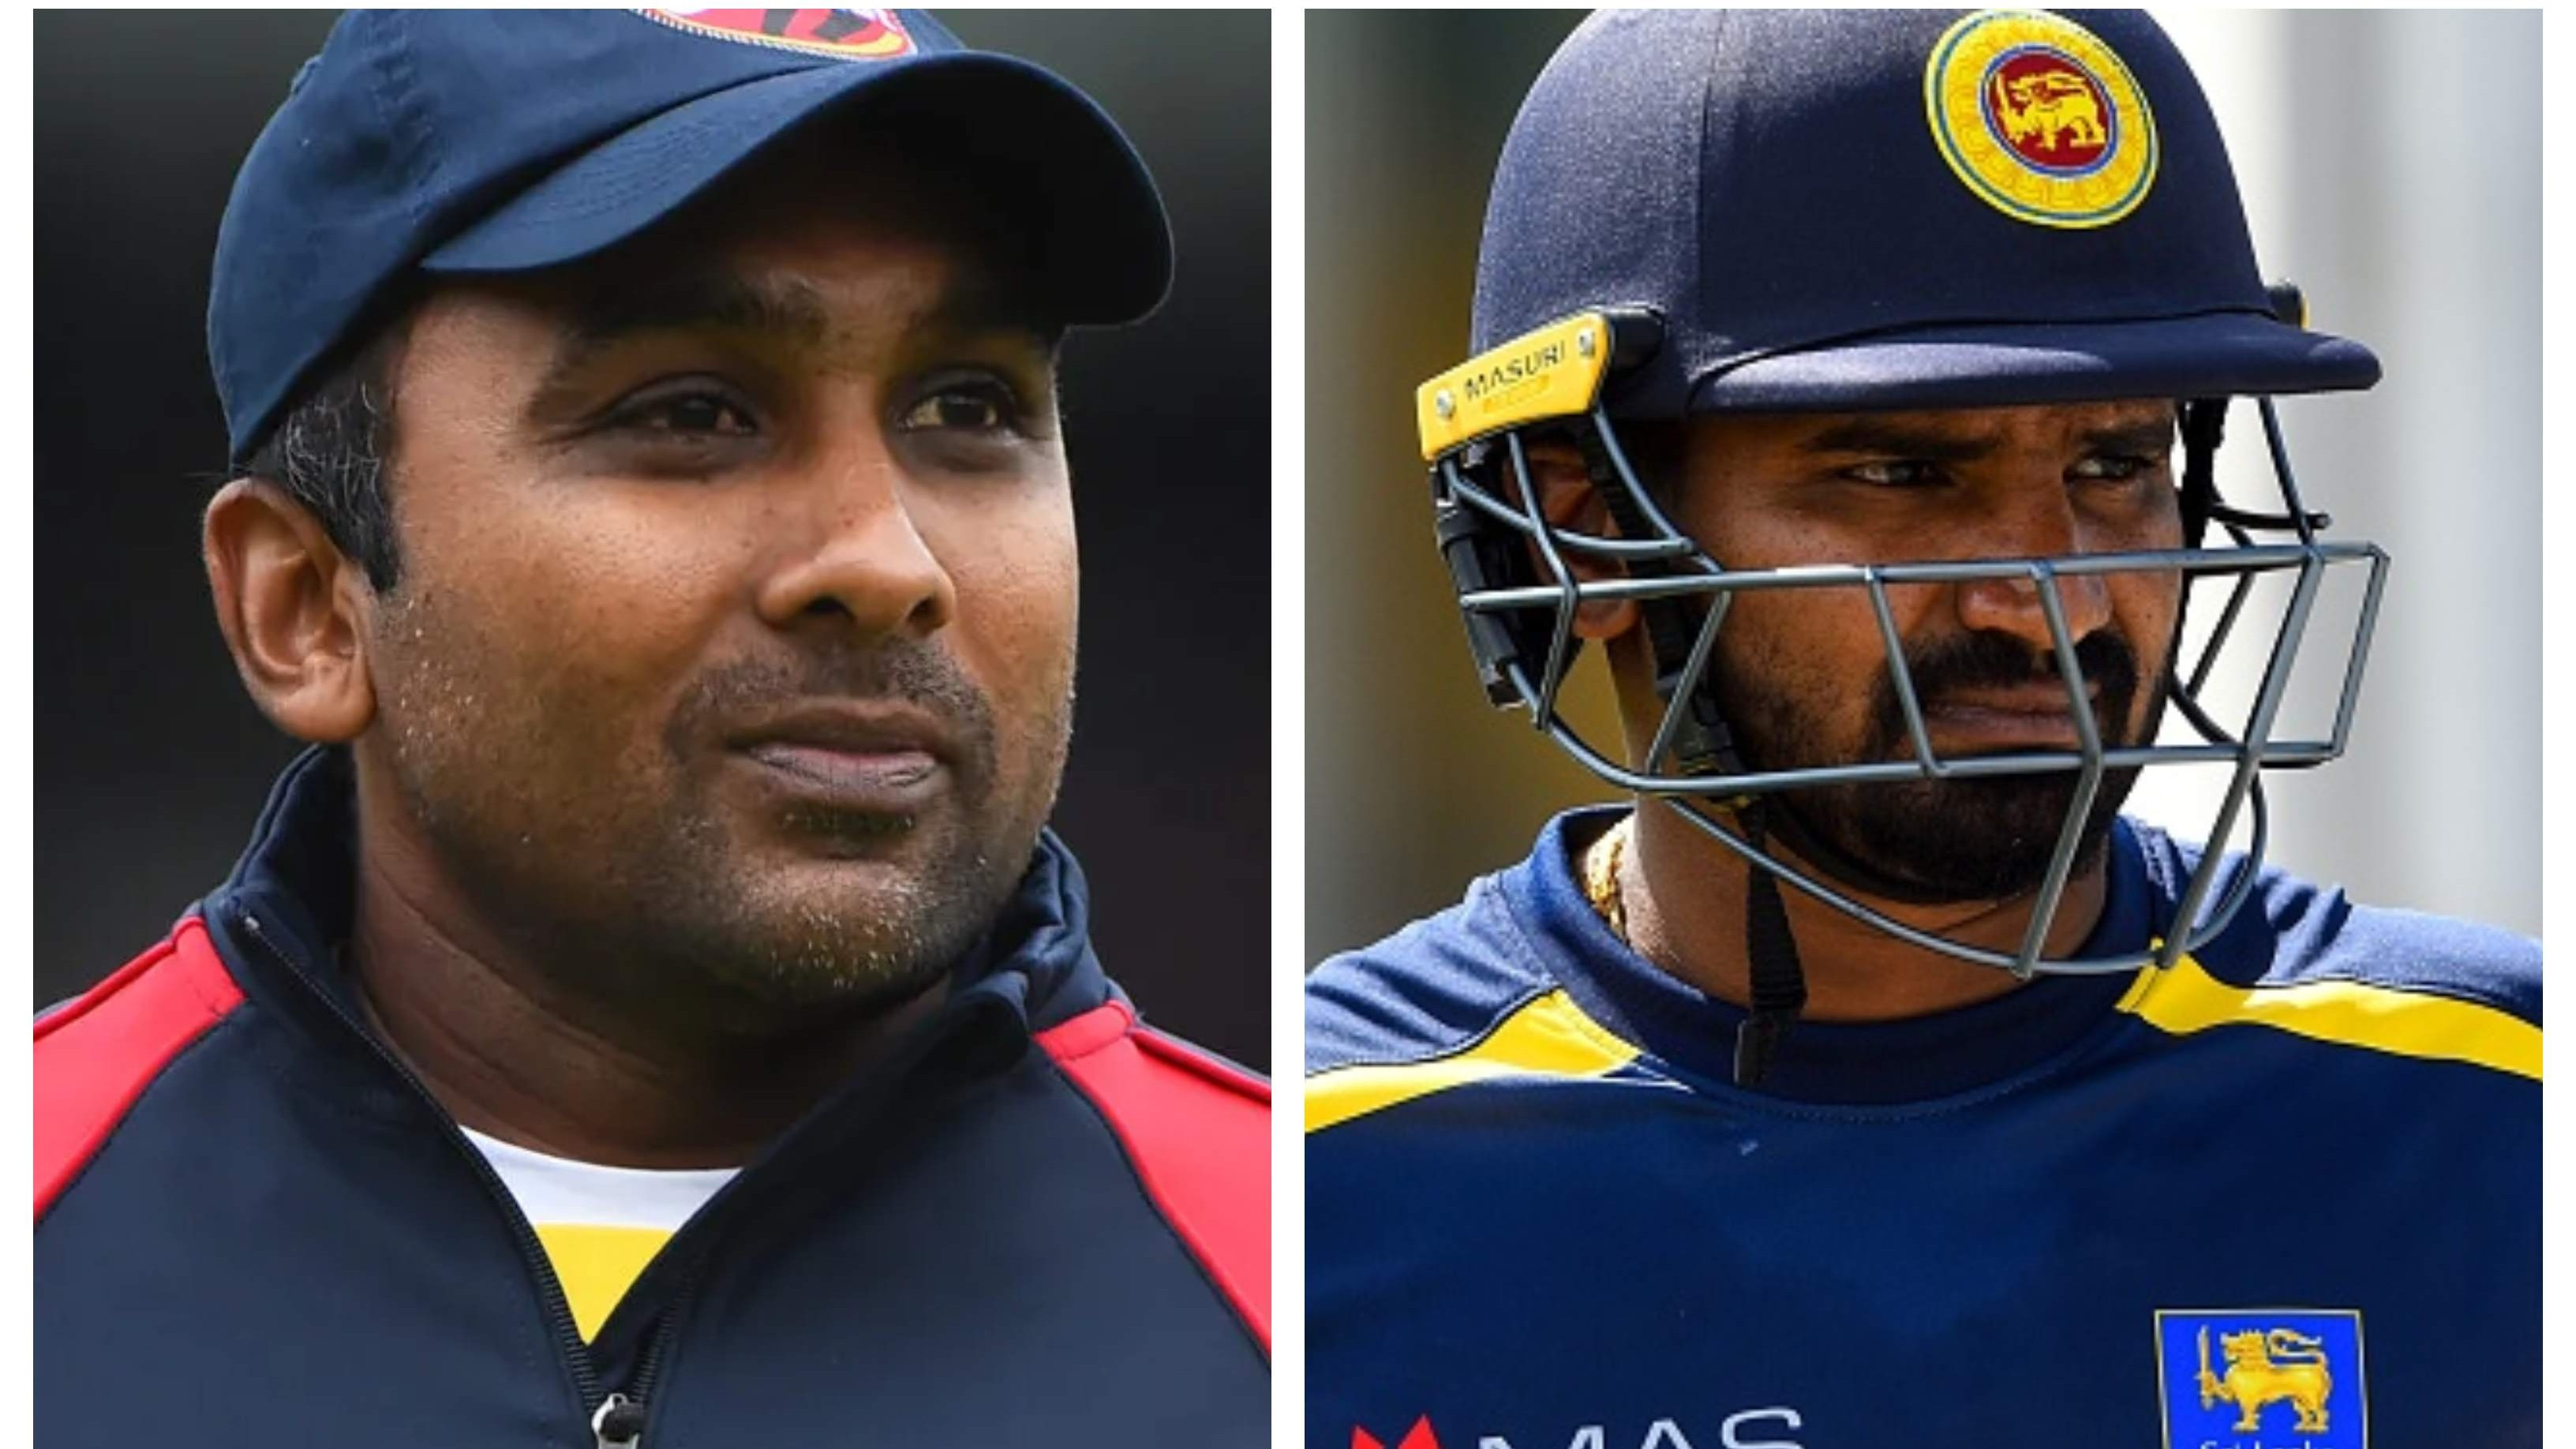 Jayawardena reacts over Sri Lanka chief selector's logic behind Perera's drop from Test squad